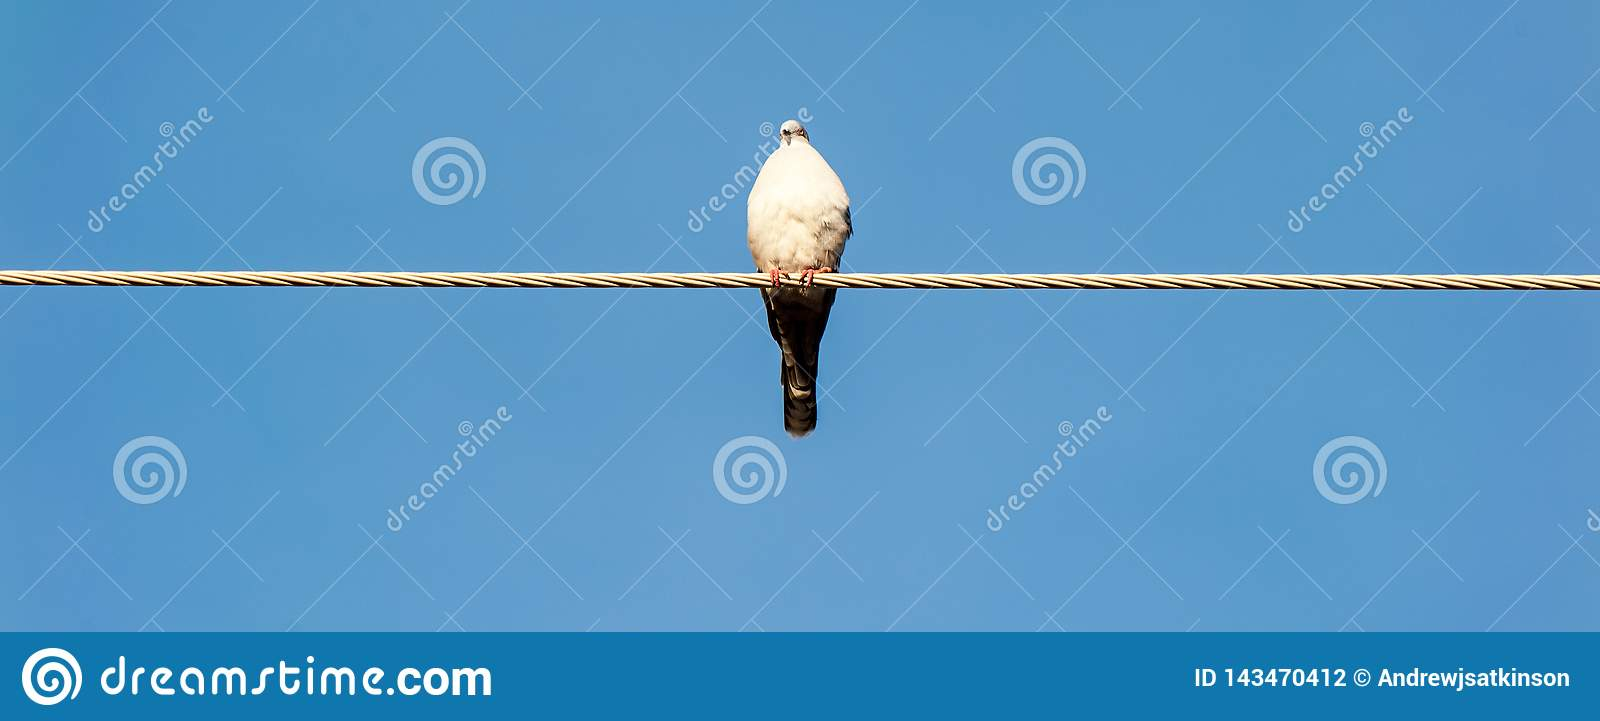 Pigeon sitting on a wire with blue sky as backdrop